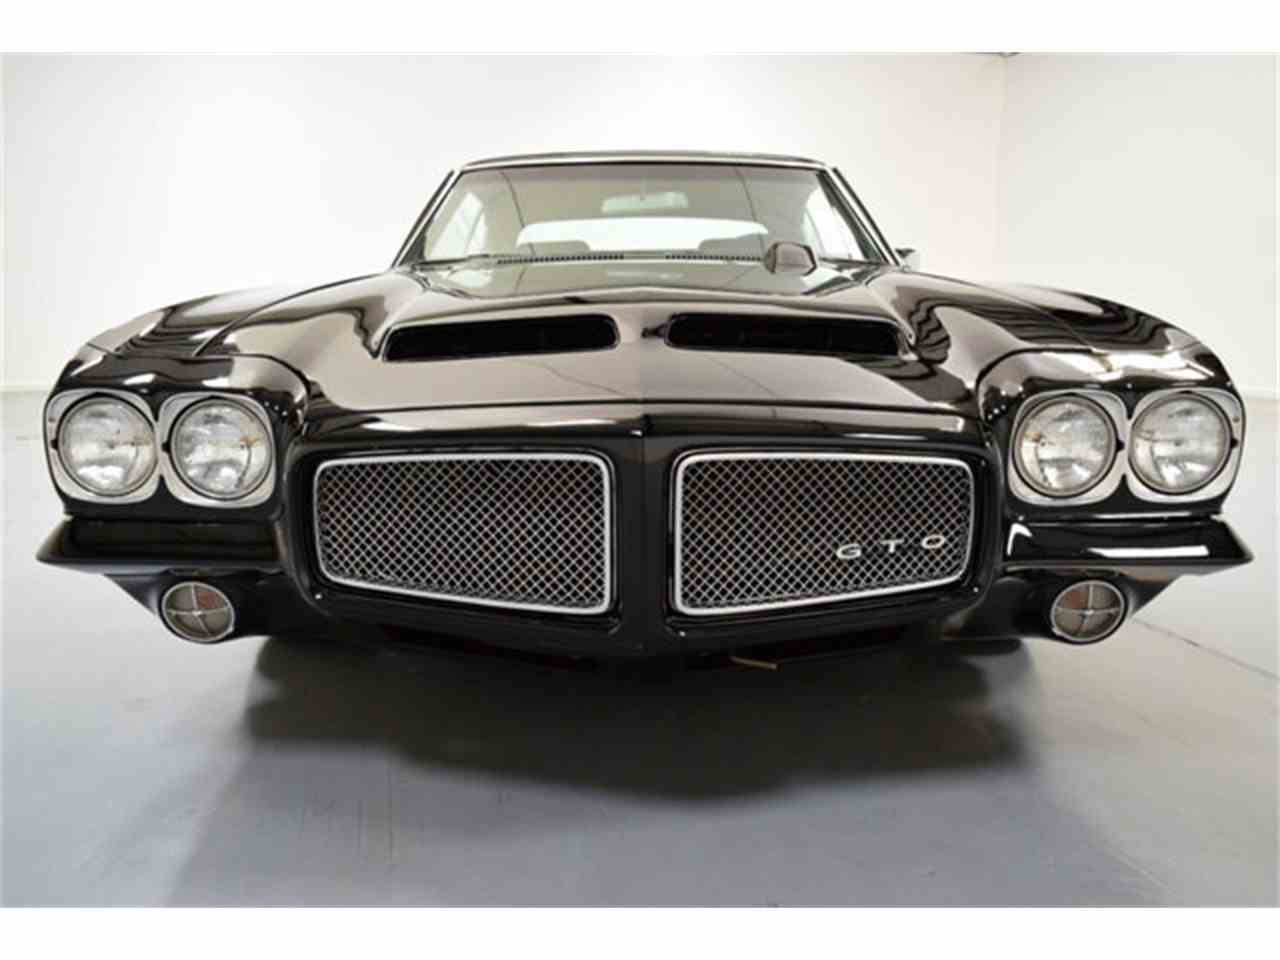 Large Picture of '71 Pontiac GTO located in North Carolina Offered by Shelton Classics & Performance - MCWM